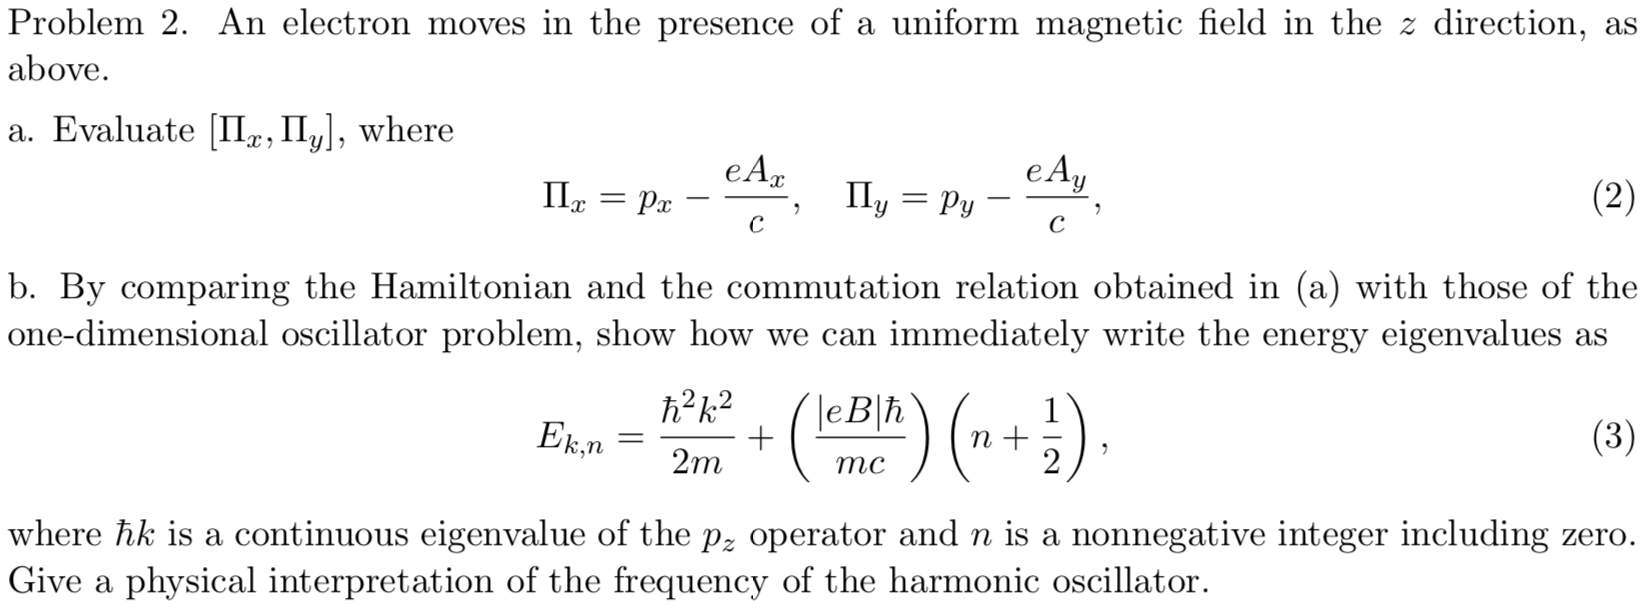 Problem 2. An electron moves in the presence of a uniform magnetic field in the z direction, as above. a. Evaluate II, II, where e А, eAy Py Ily (2) Ра с с b. By comparing the Hamiltonian and the commutation relation obtained in (a) with those of the one-dimensional oscillator problem, show how we can immediately write the energy eigenvalues as h2k2 leBh 1 Ek.n (3) 2m тс where hk is a continuous eigenvalue of the p2 operator and n is a nonnegative integer including zero. Give a physical interpretation of the frequency of the harmonic oscillator